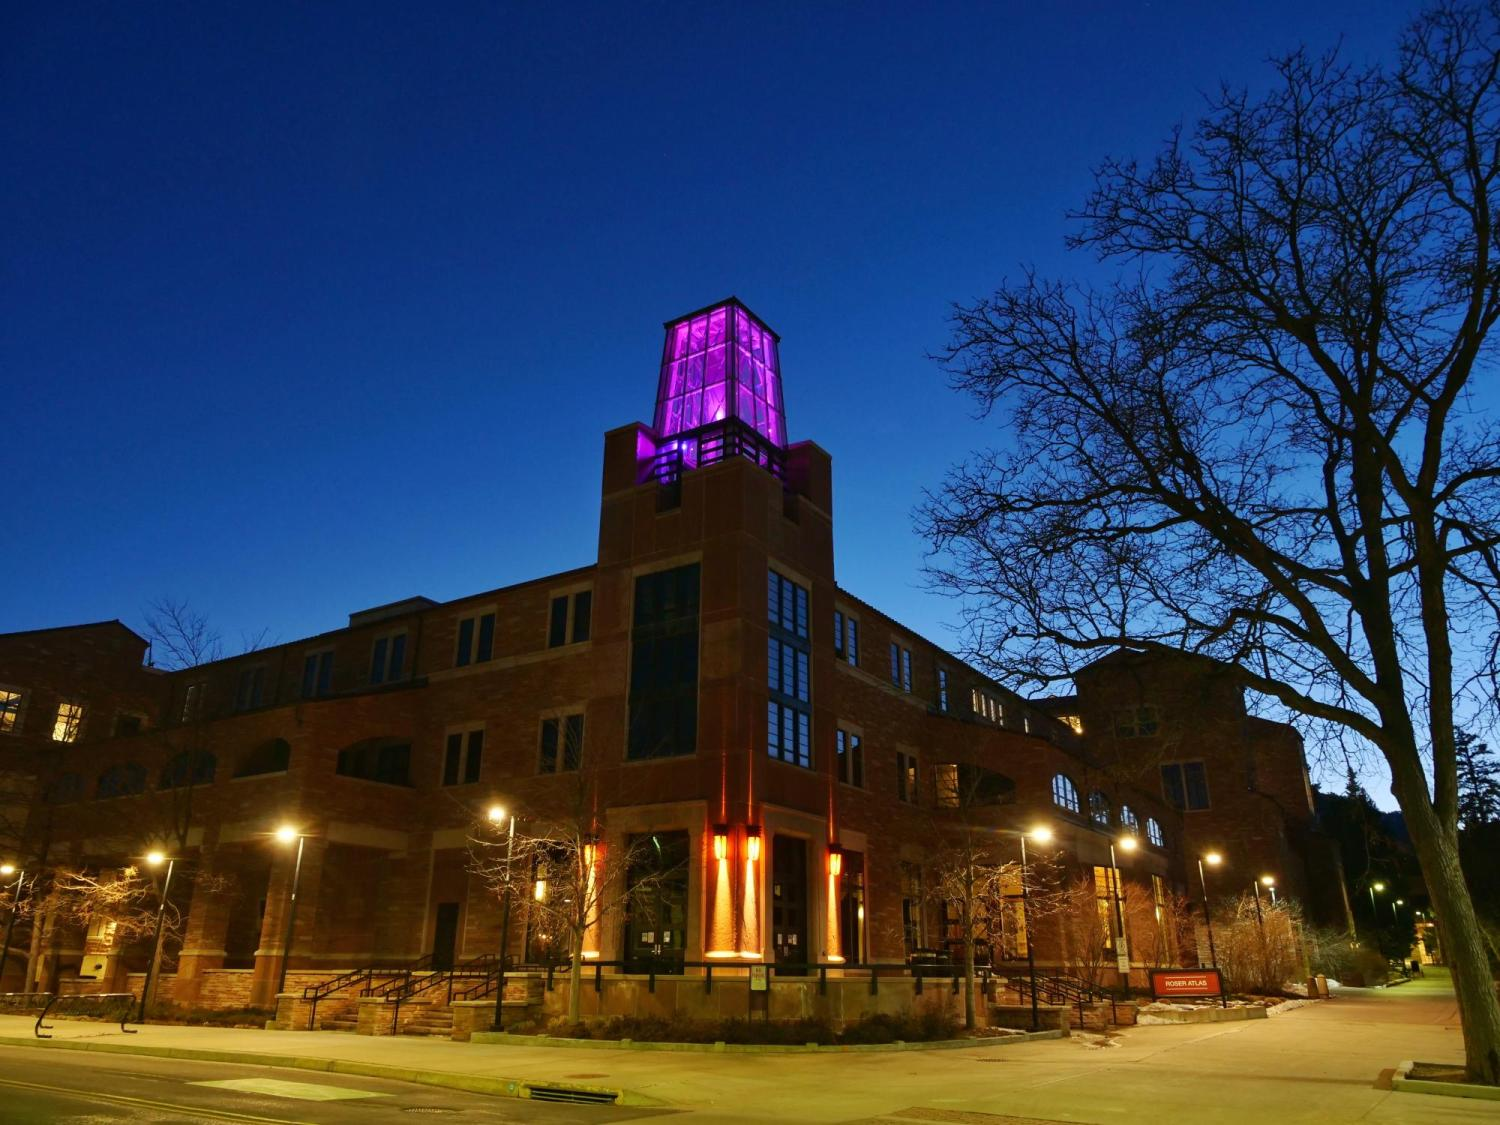 On March 6, the Roser ATLAS building shines magenta––part of the state of Colorado's COVID-19 anniversary remembrance. (Photo by Glenn Asakawa/CU Boulder)